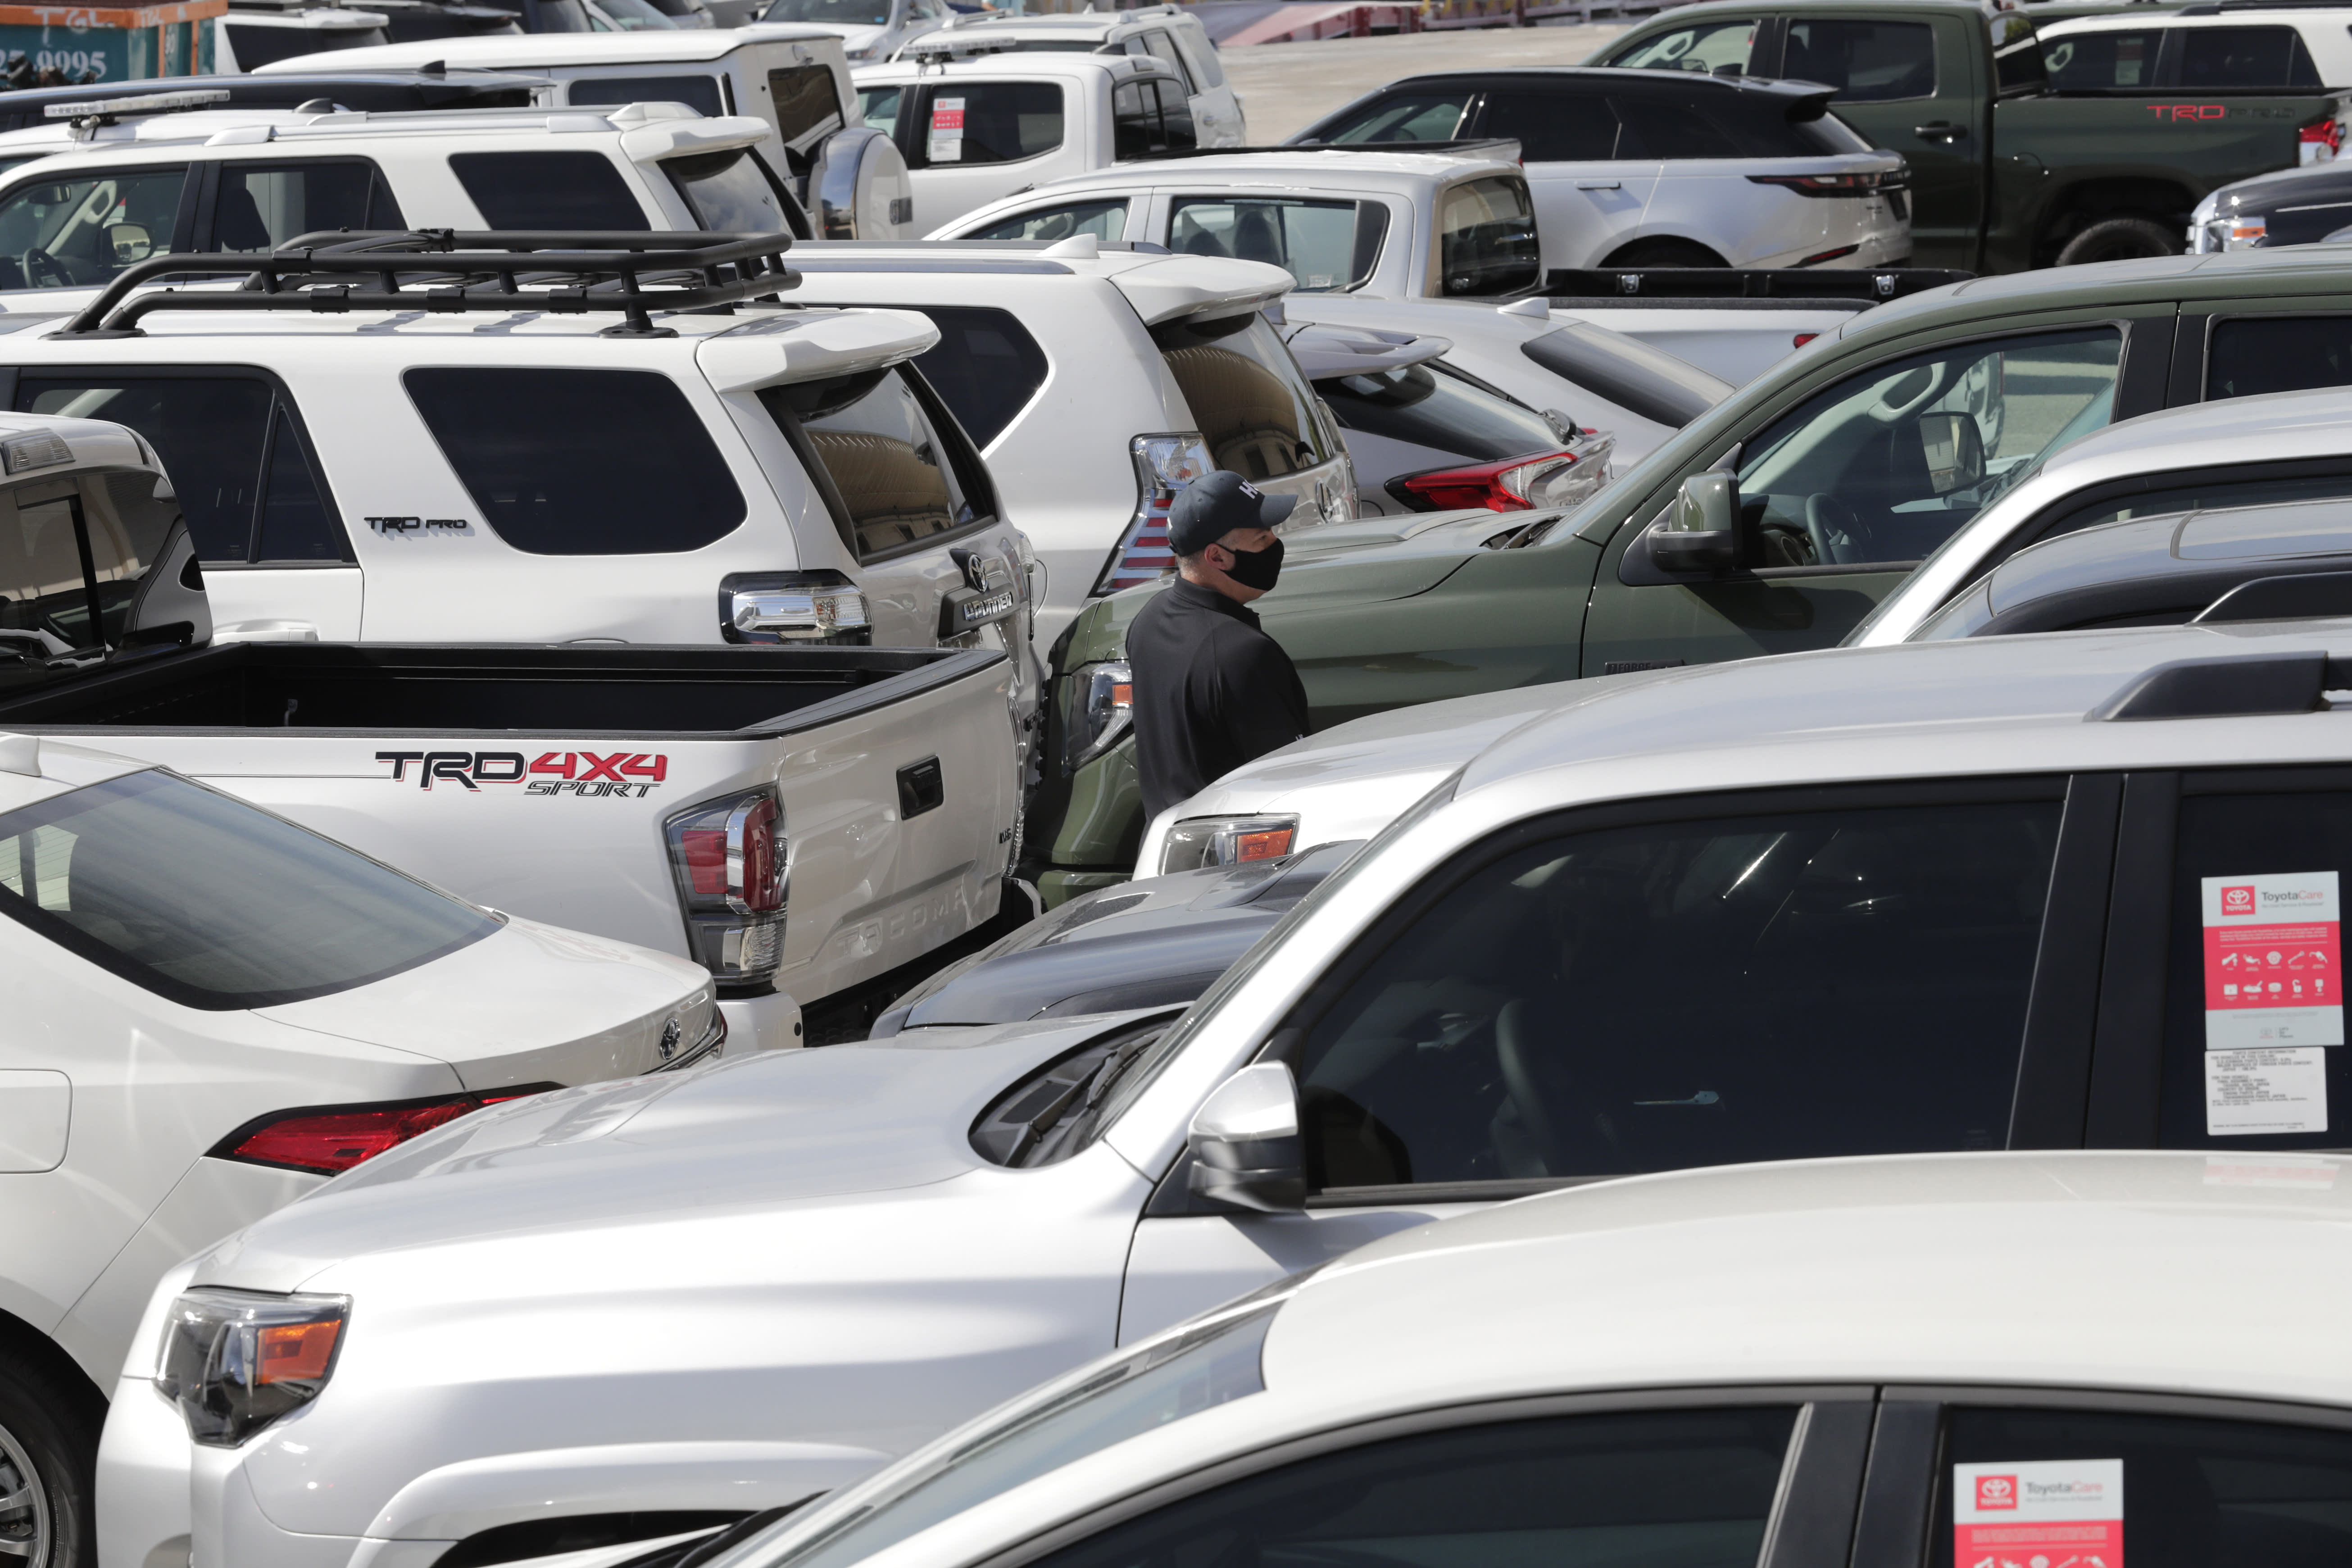 An official with Homeland Security Investigations walks among vehicles worth an estimated $3.2 million, at Port Everglades after they were seized by Homeland Security Investigations, Wednesday, July 8, 2020, in Fort Lauderdale, Fla. The vehicles were to be smuggled to Venezuela in violation of U.S. export laws and sanctions against the socialist Venezuelan government. (AP Photo/Lynne Sladky)